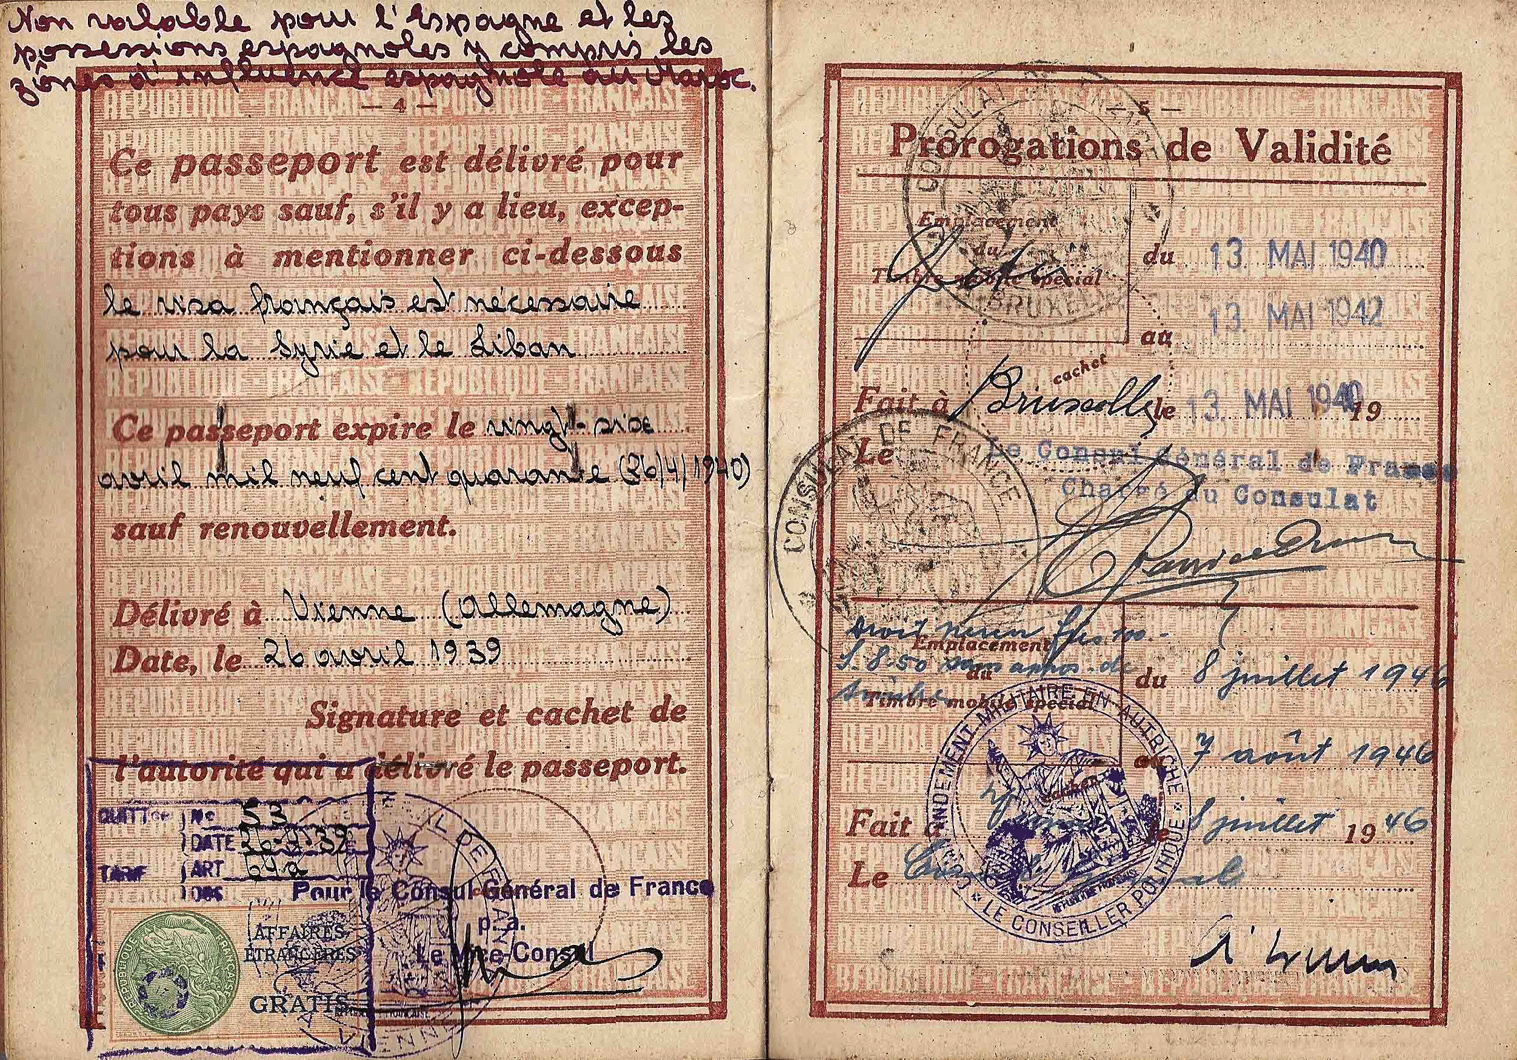 1939 French official's passport